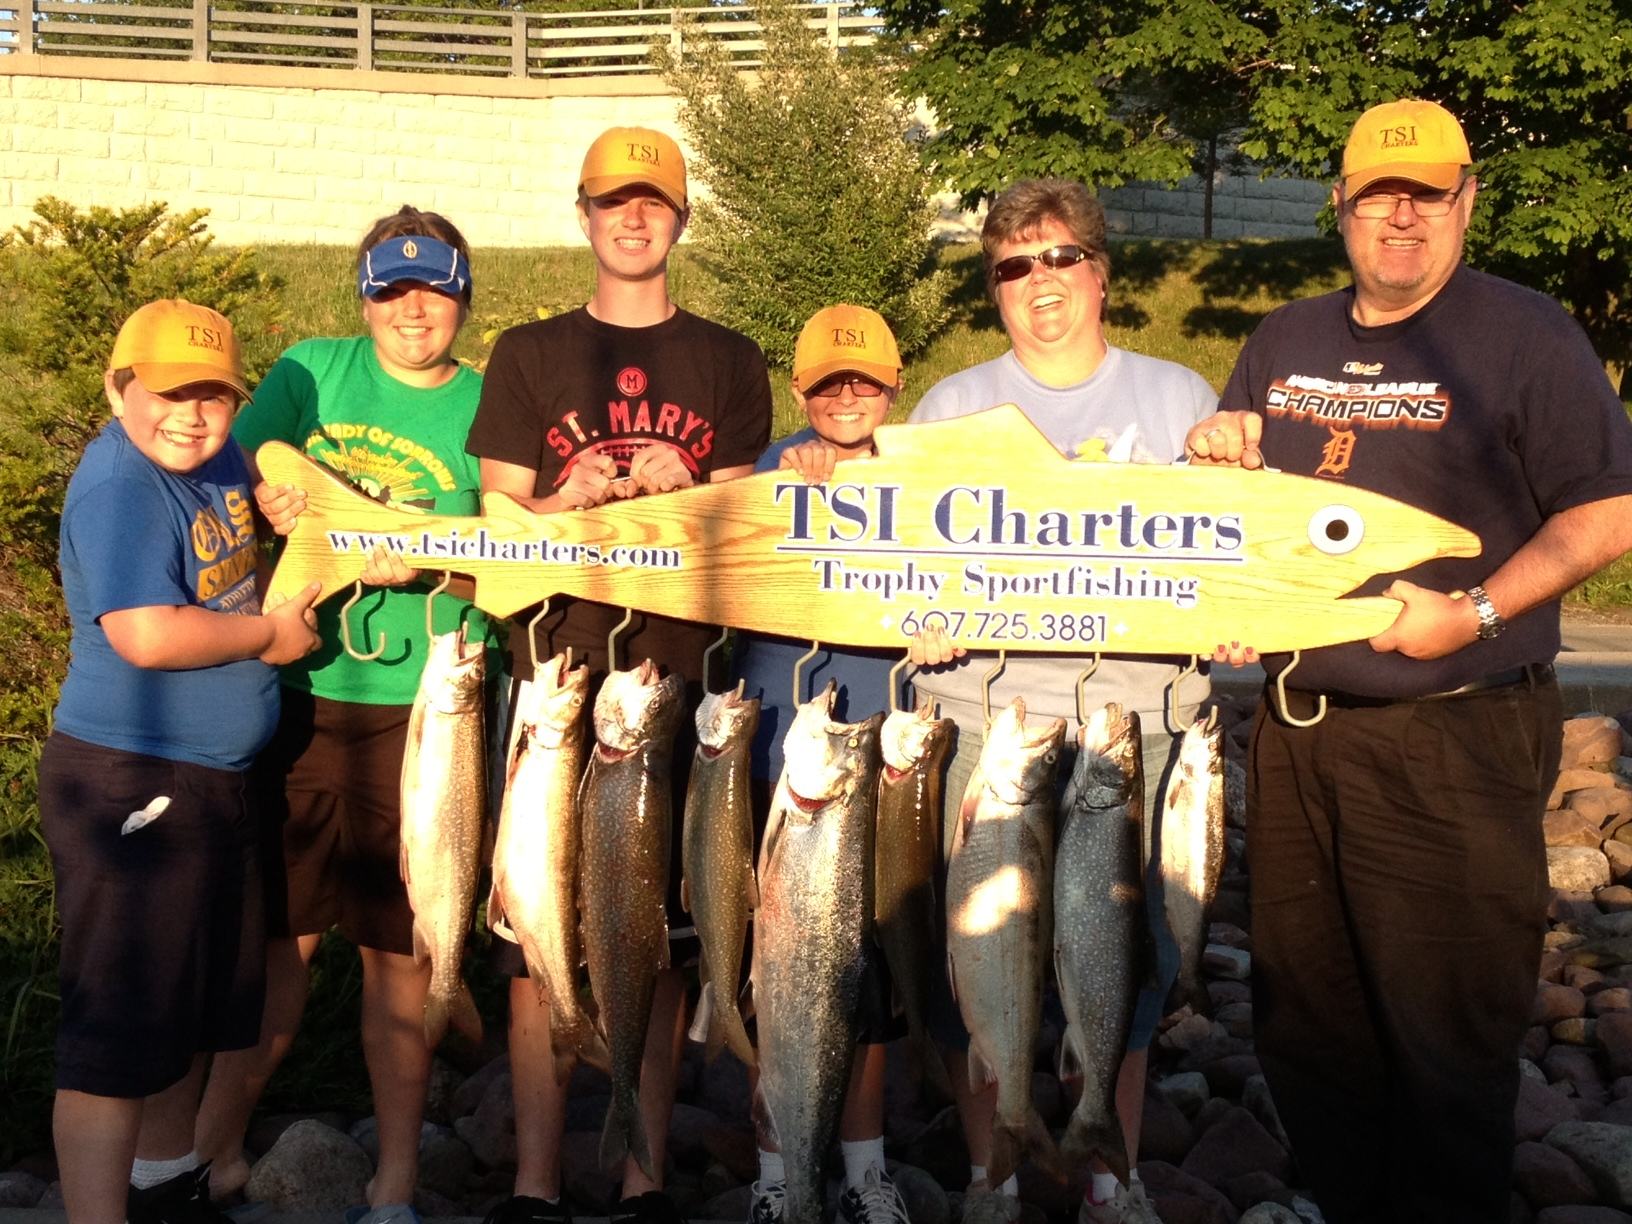 Lake Ontario Area Charter Photos with TSI Charters - ambrose-family-06-19-13-photo.jpg